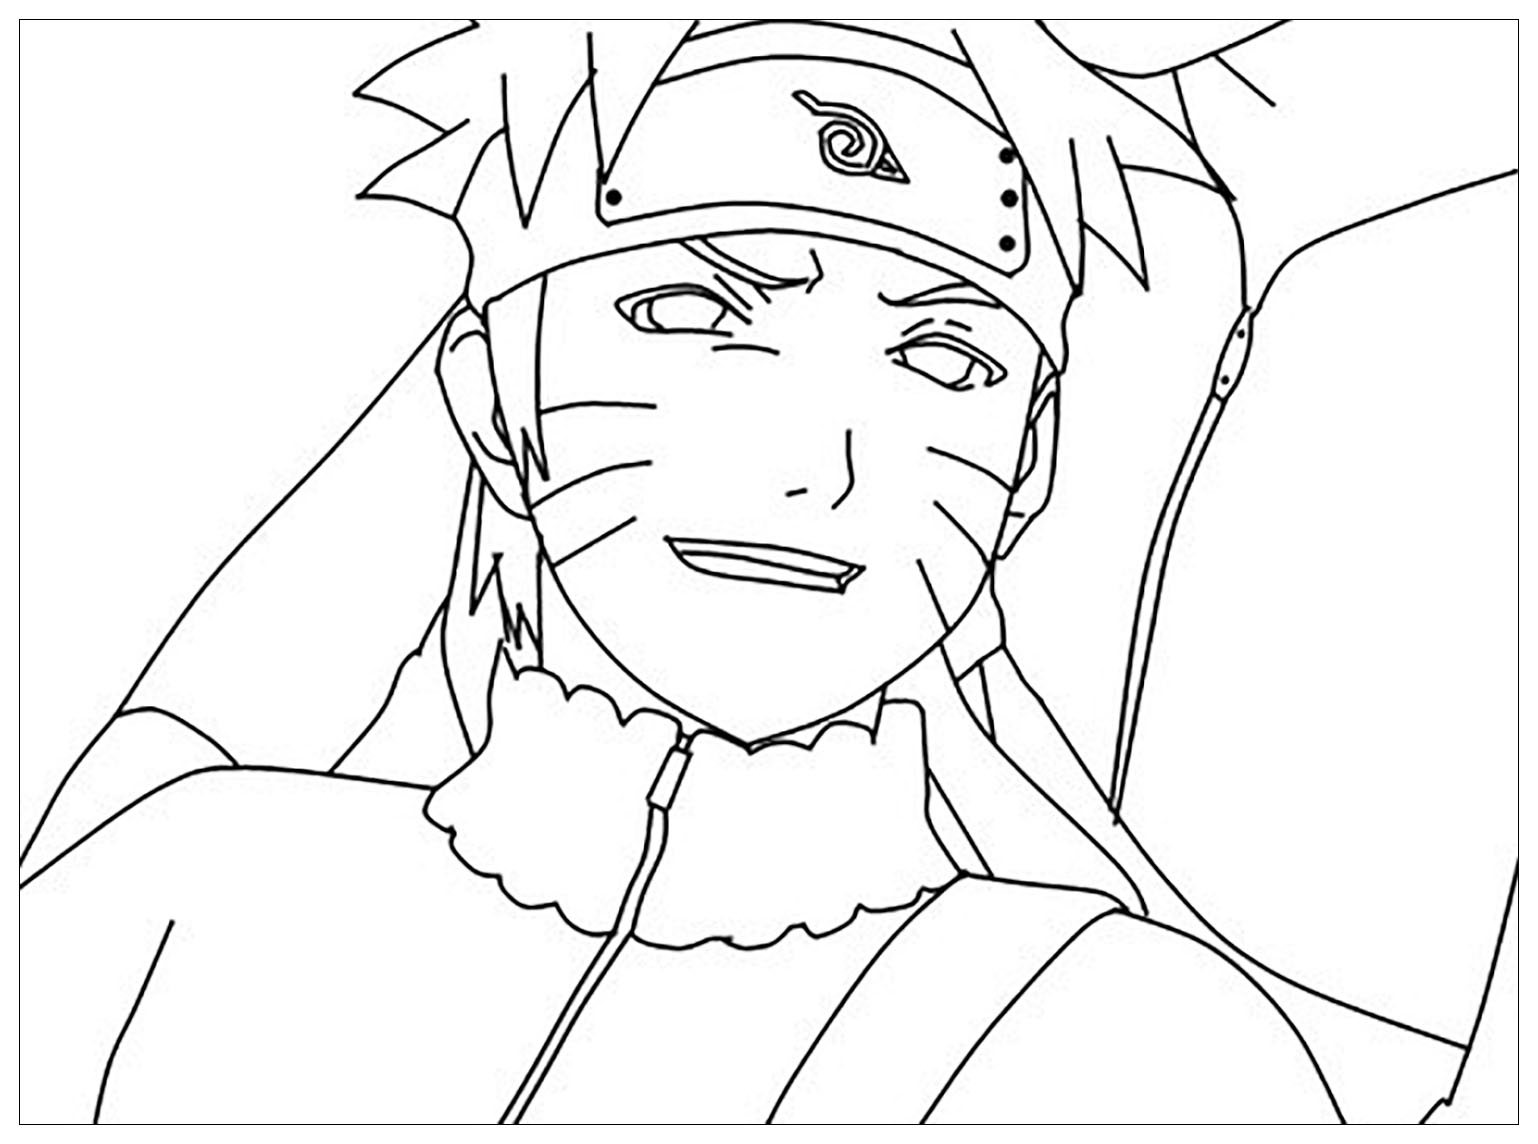 Naruto coloring page to download for free